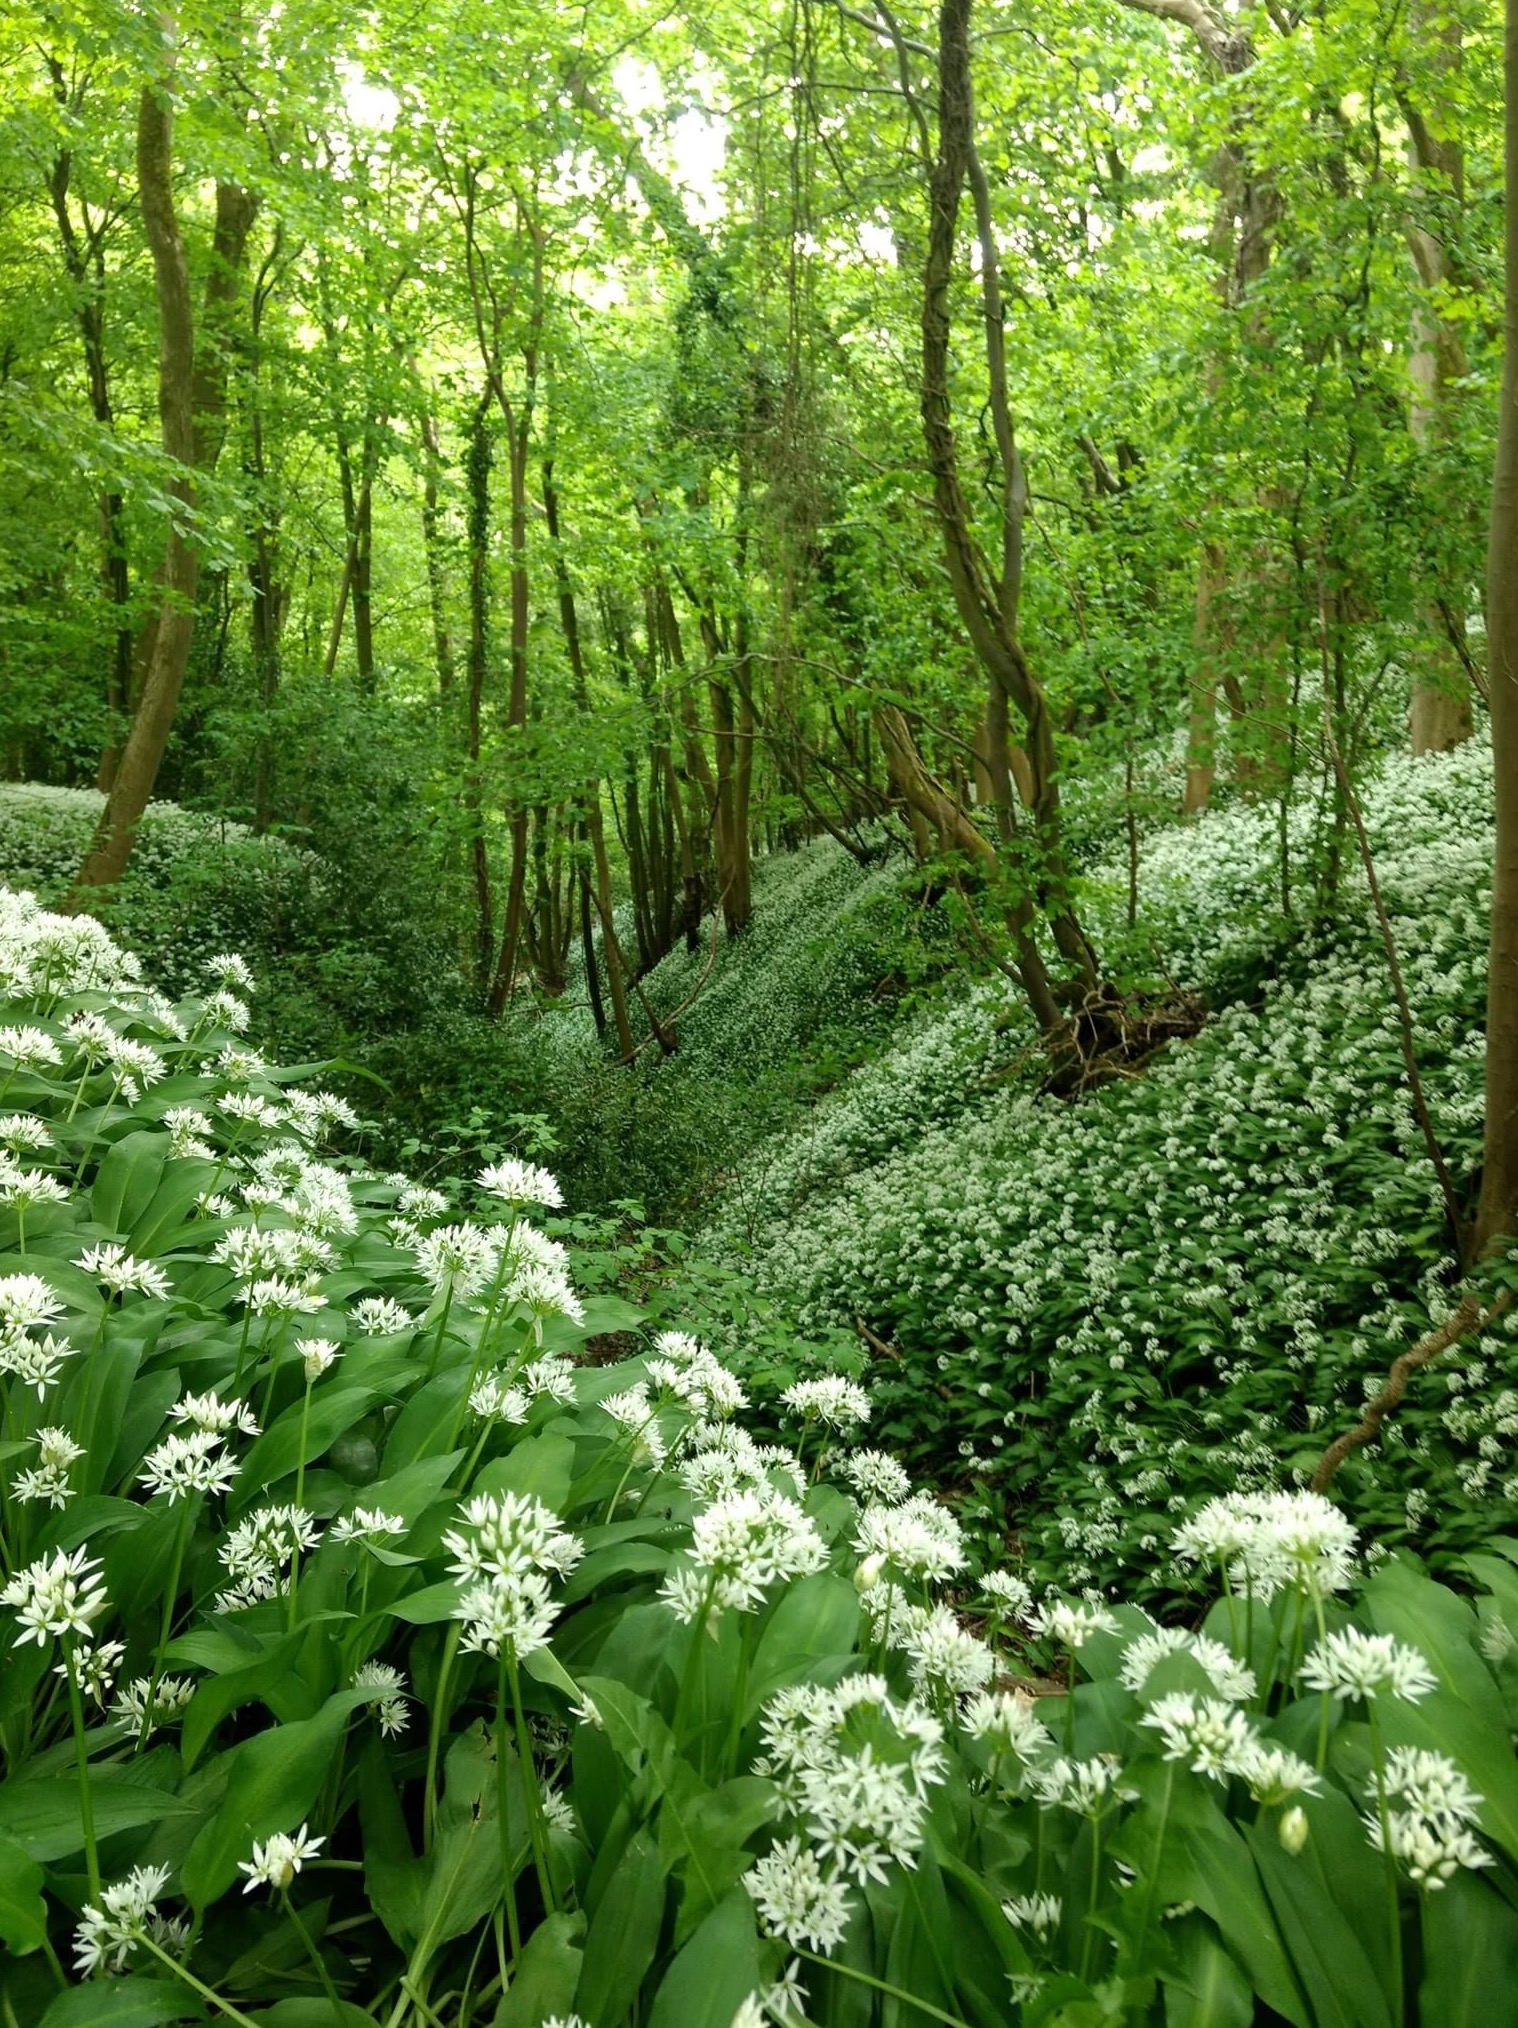 Wild garlic in the woods